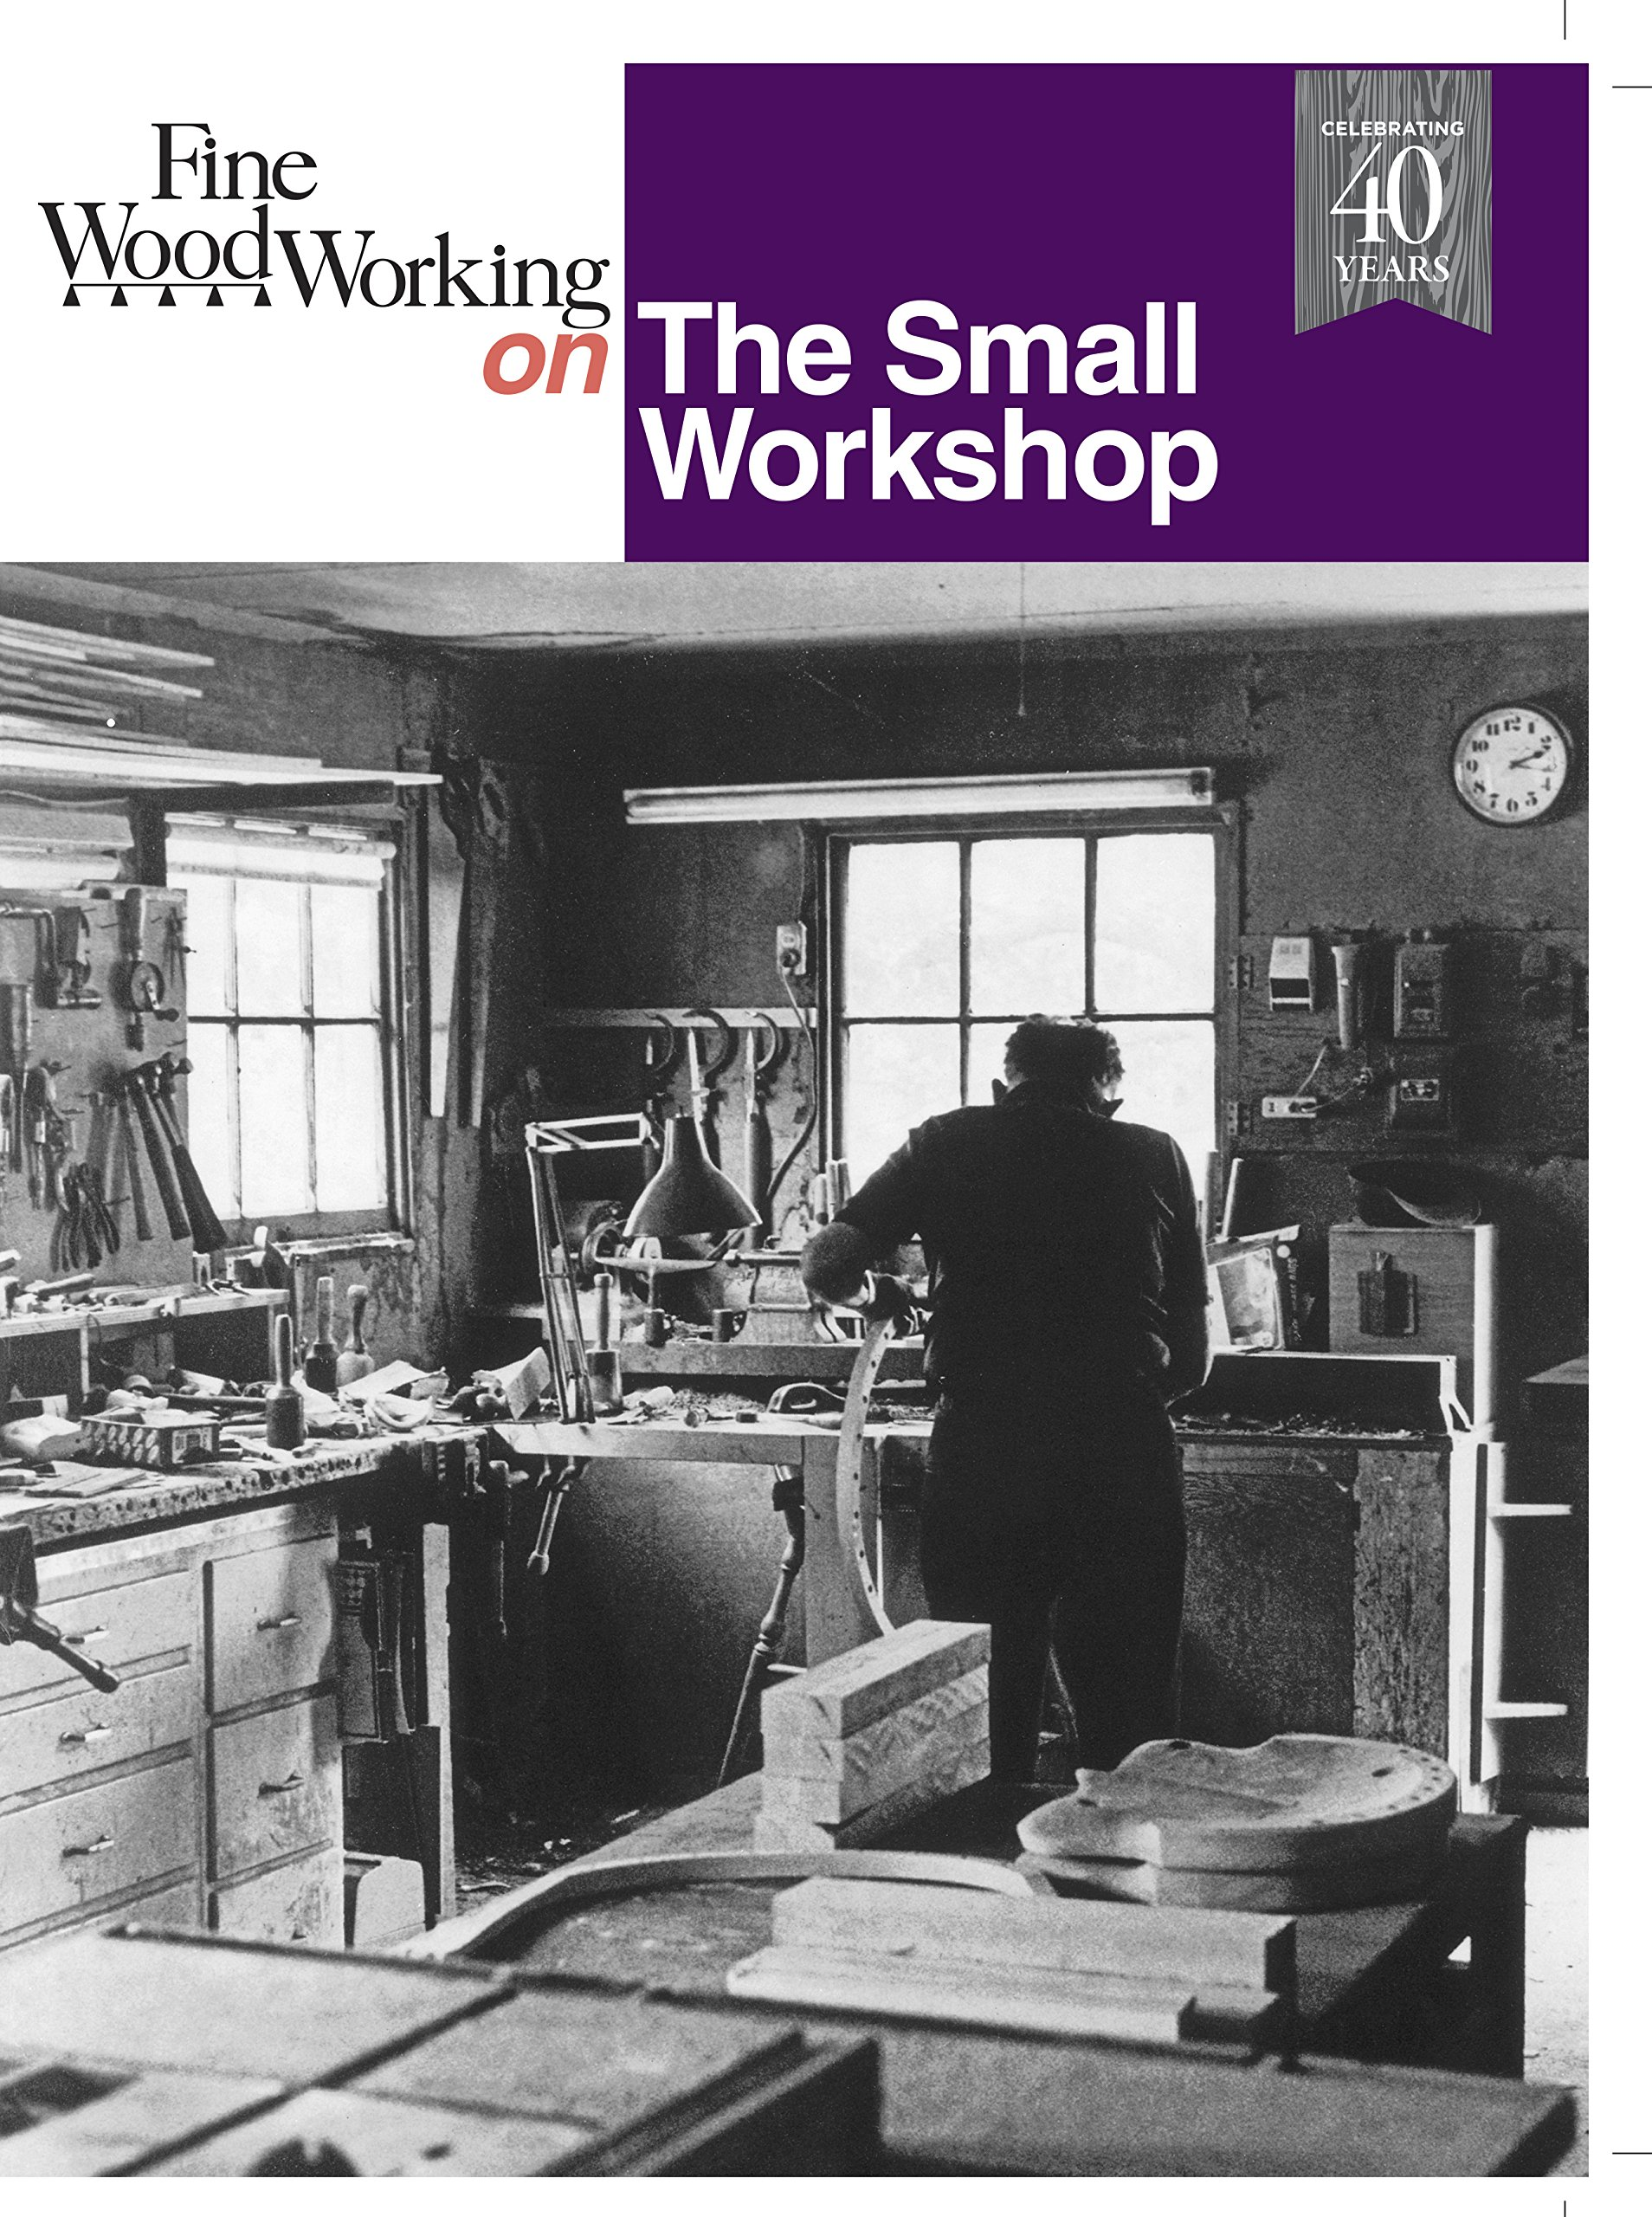 Fine Woodworking On The Small Workshop Editors Of Fine Woodworking 9780918804273 Amazon Com Books